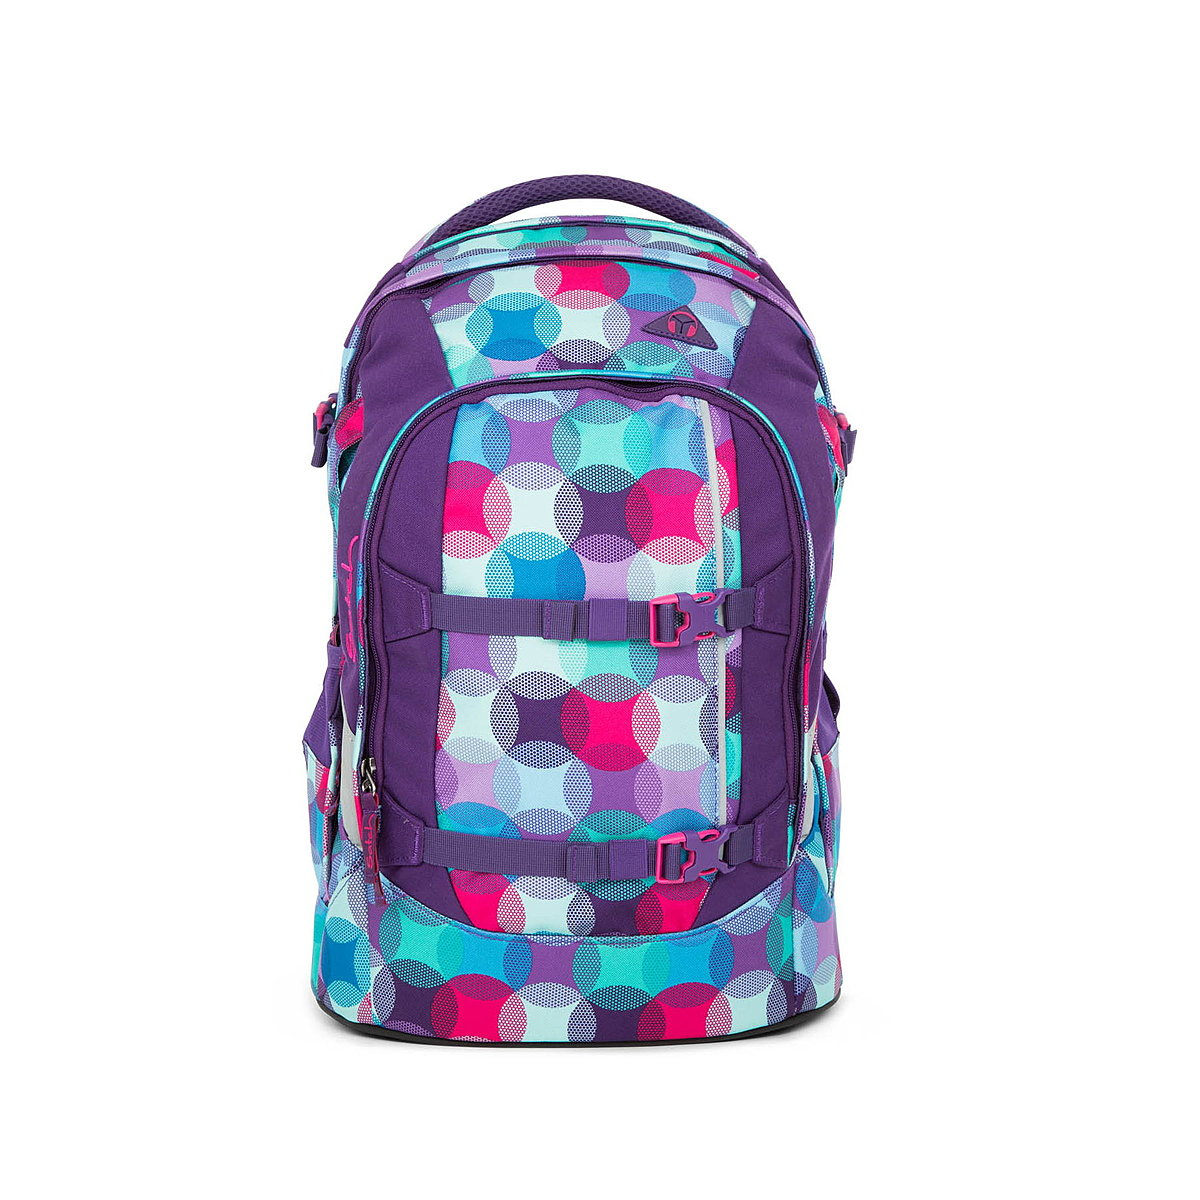 Satch Pack Schulrucksack Hurly Pearly, bunte Punkte